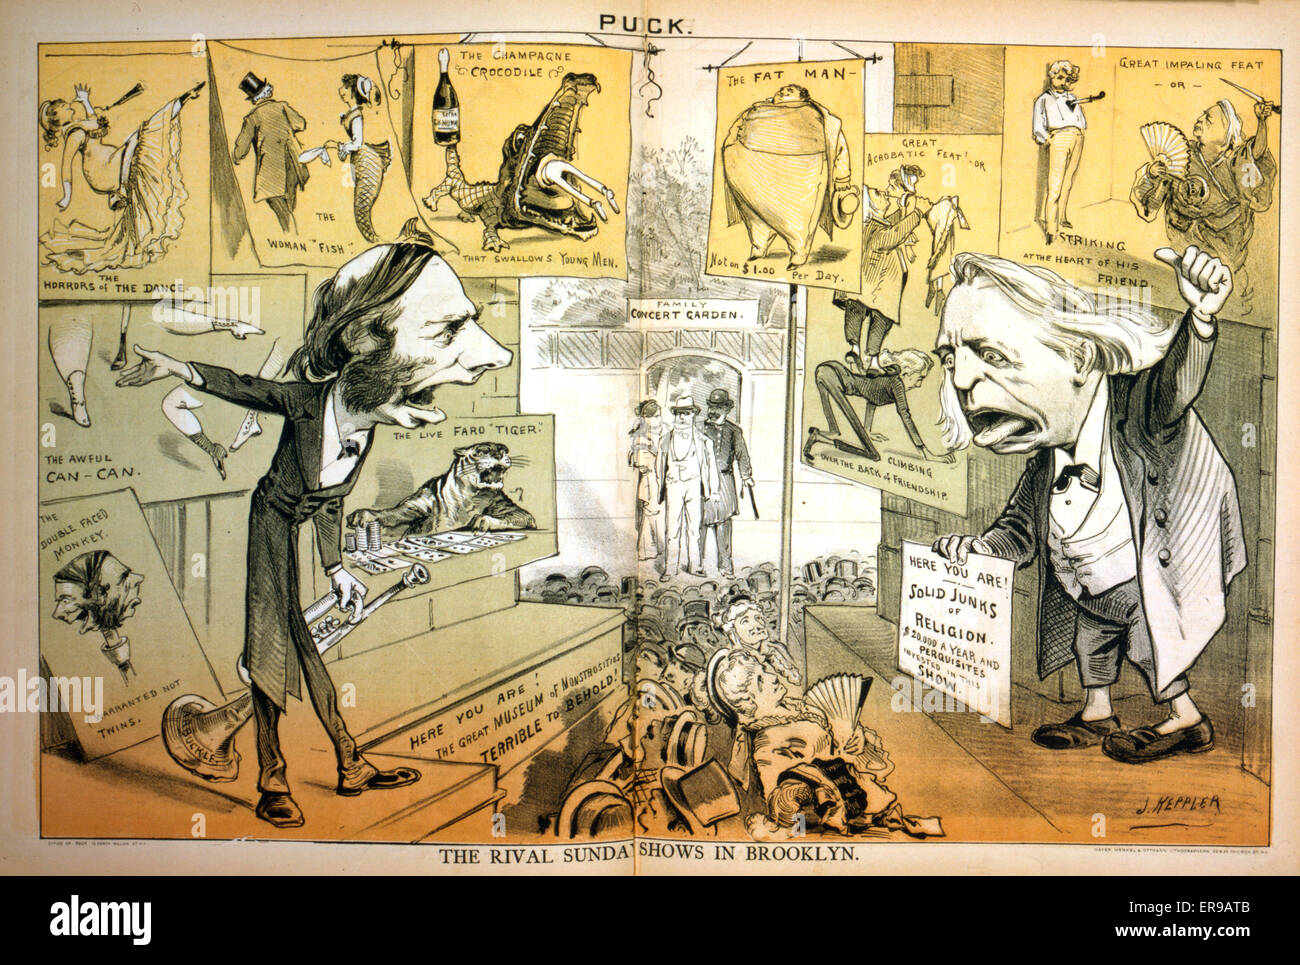 The rival Sunday shows in Brooklyn. Cartoon showing Thomas DeWitt Talmage on one side, trying to get people to come - Stock Image